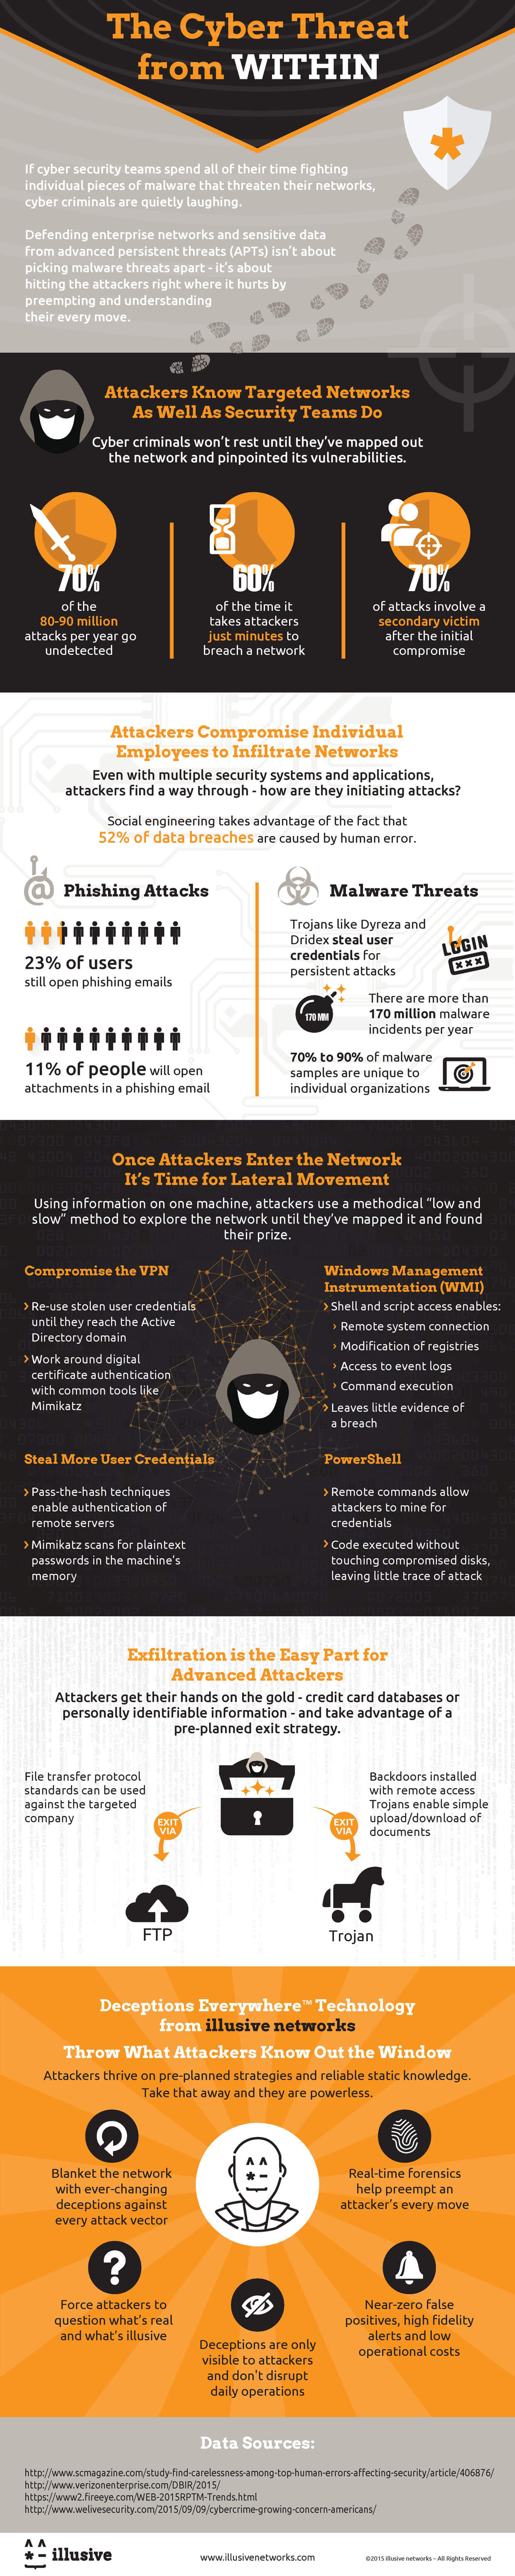 The-Cyber-Threat-From-Within-infographic